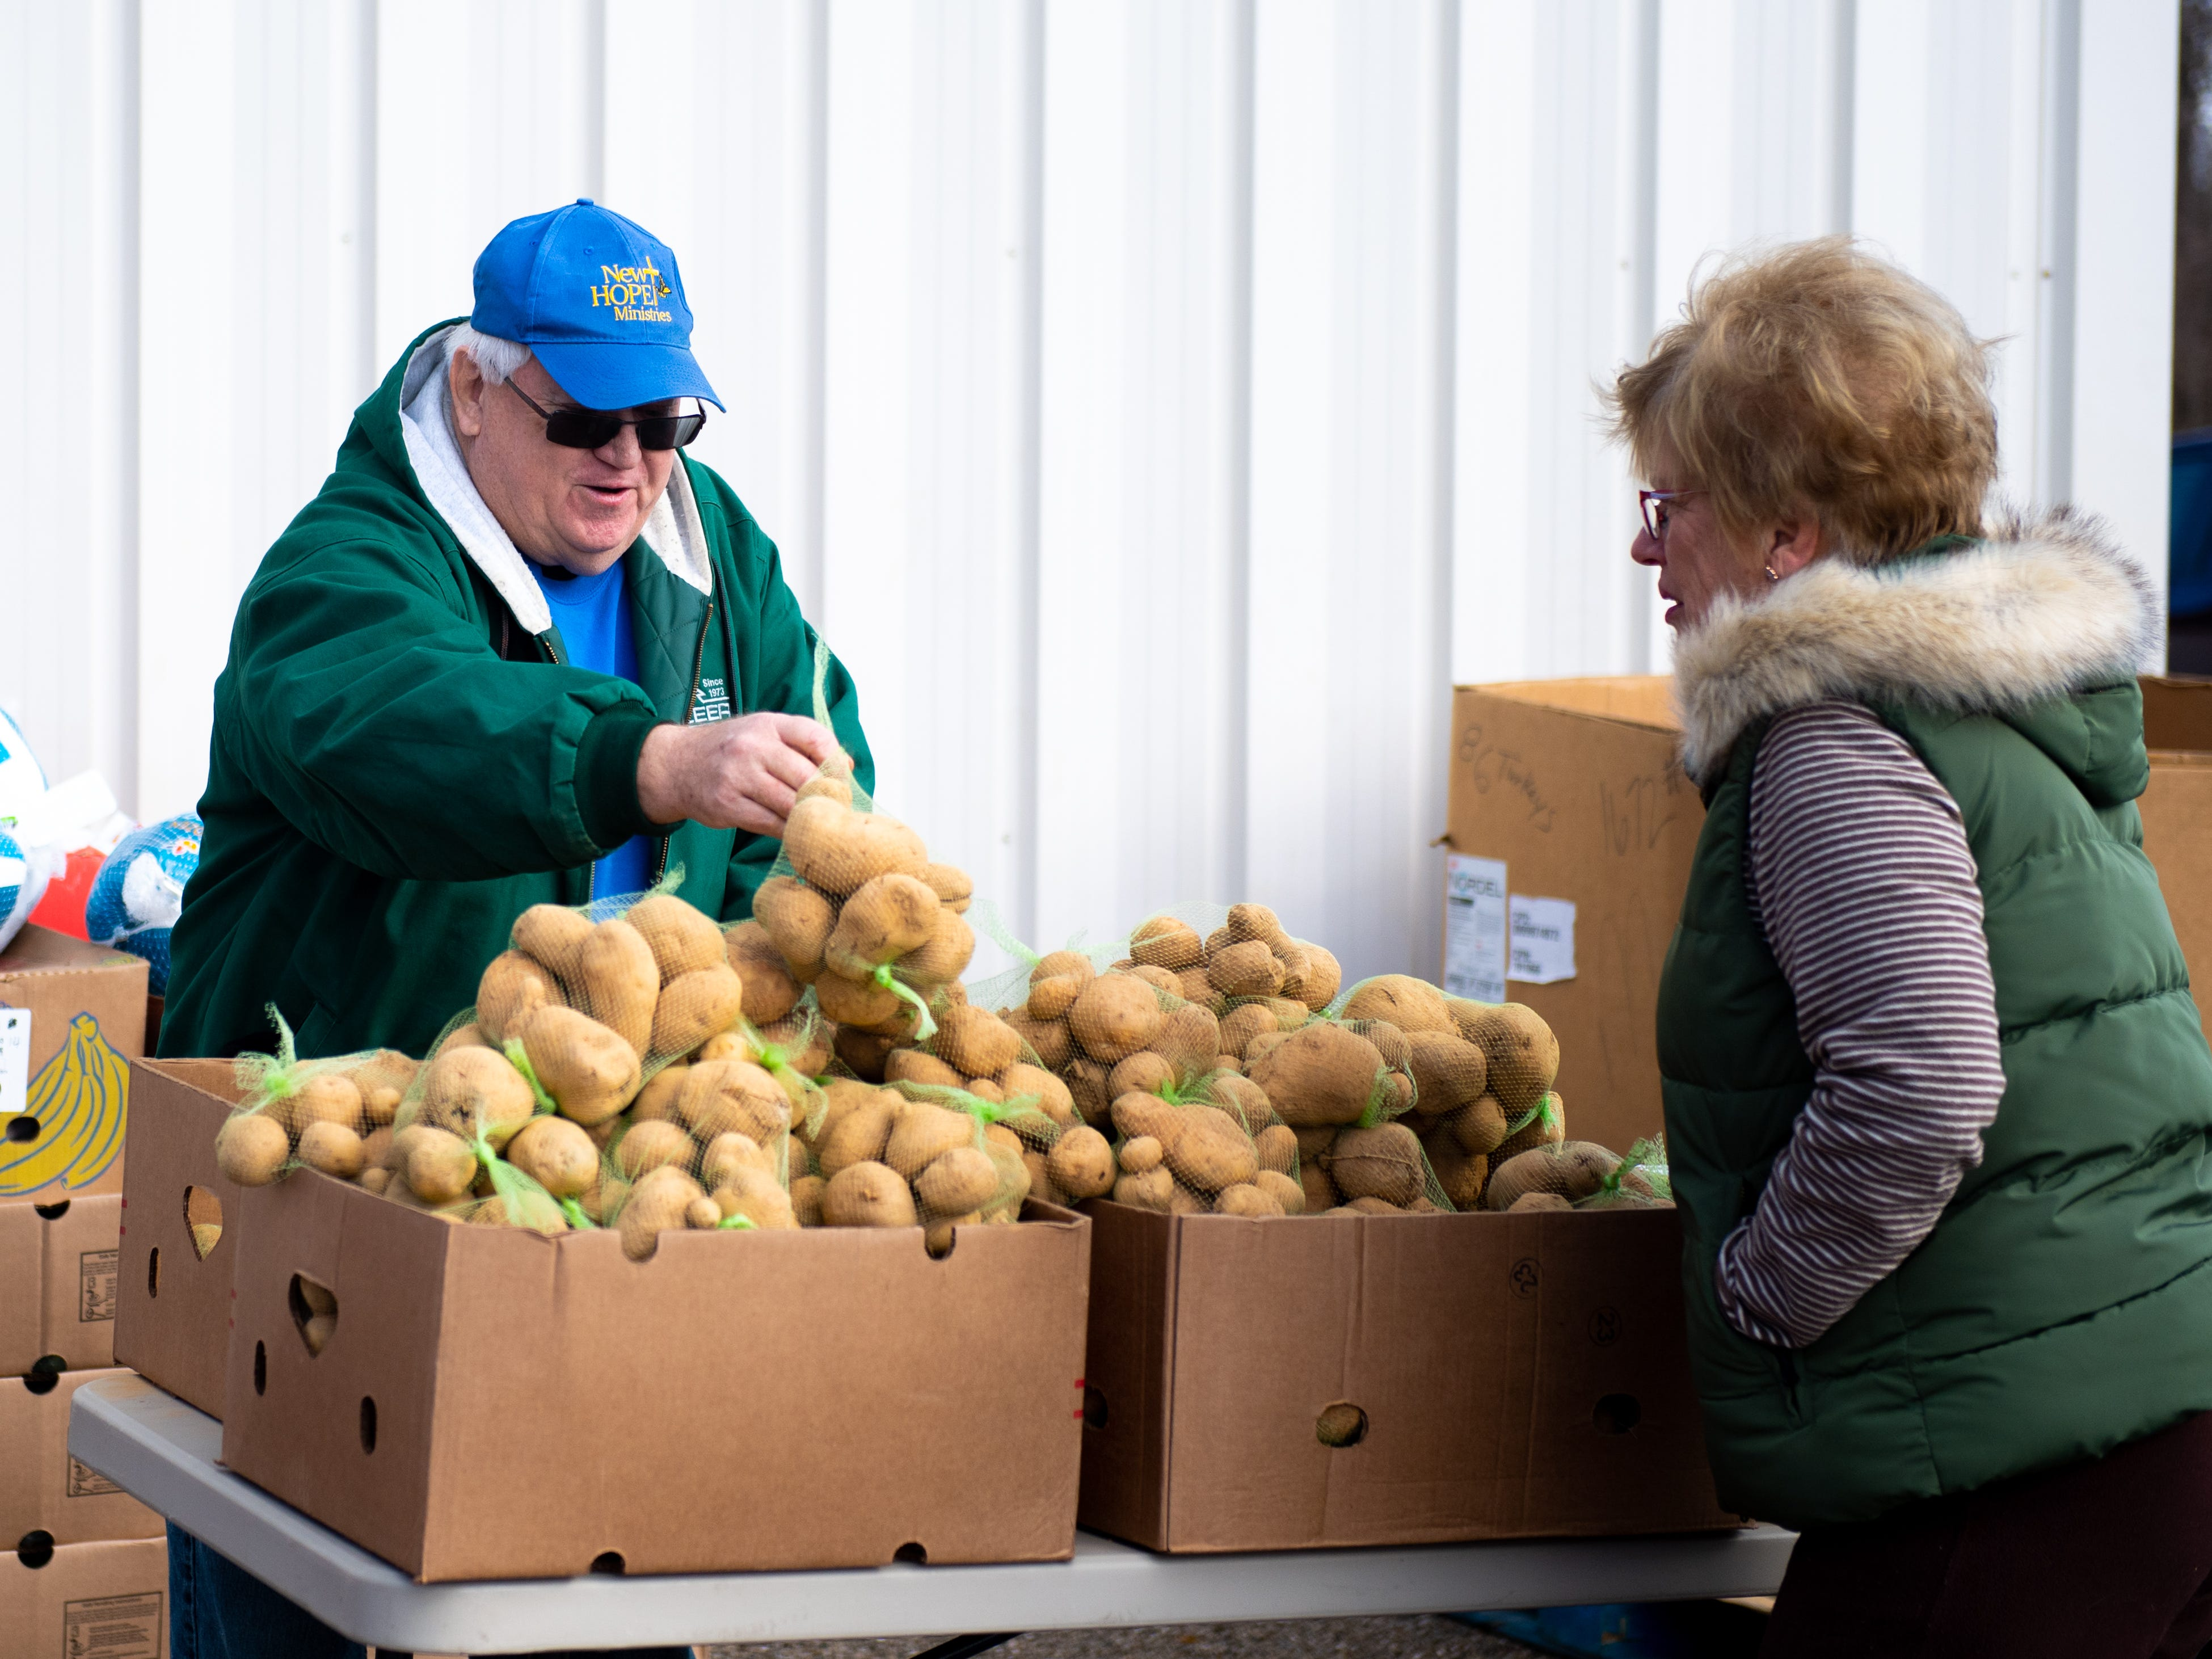 George Frank, left, assisted by Sandy Heff, refills the potato box during the Thanksgiving food giveaway provided recently by New Hope Ministries in Dover. The organization is just one of several groups around York County working to ensure everyone gets a traditional Thanksgiving dinner.